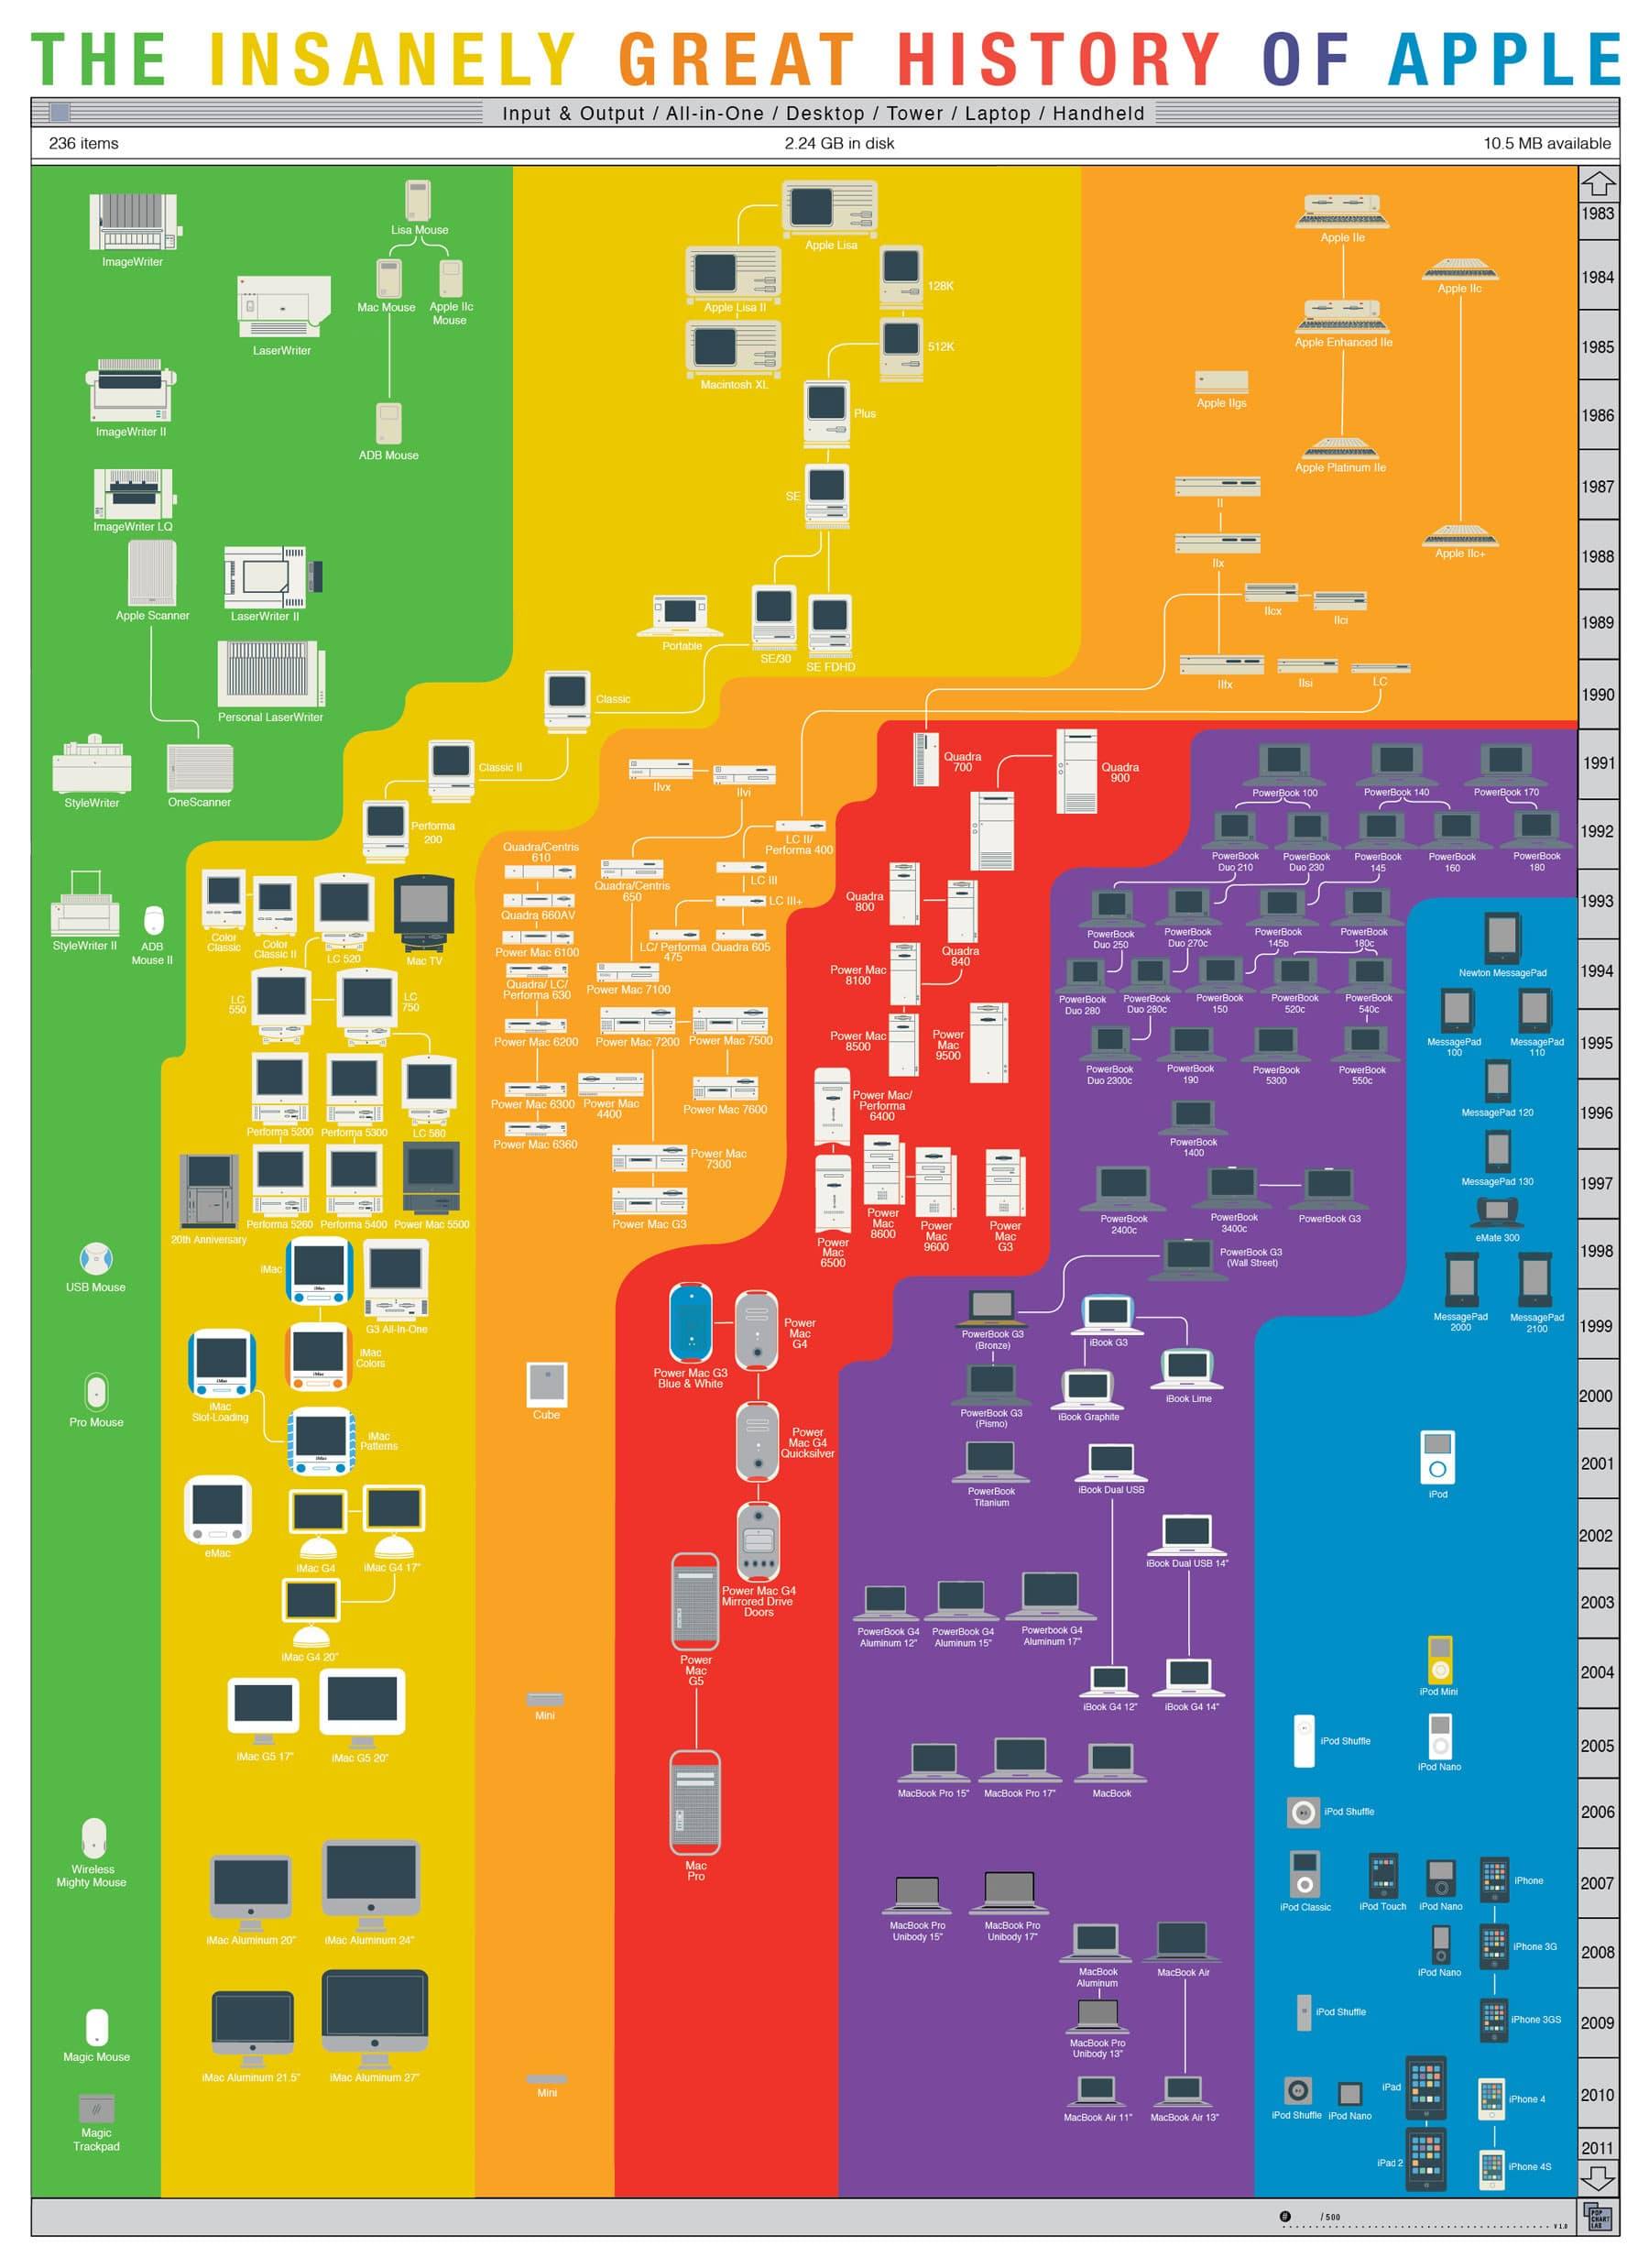 The Insanely Great Visual History Of Apple [Infographic]